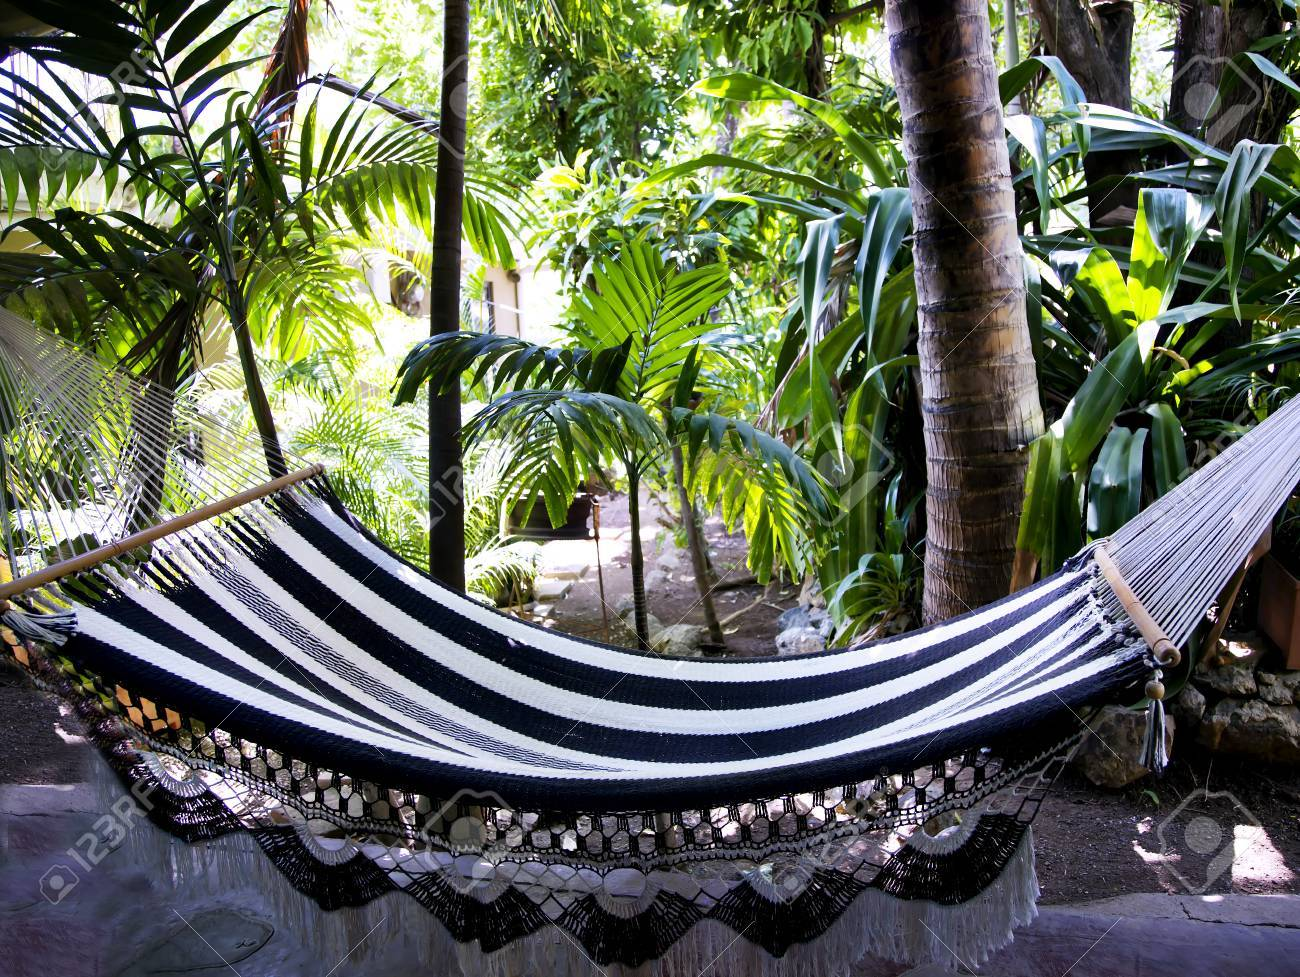 Medium image of rest in a hammock in costa rica s tropical jungles central america stock photo